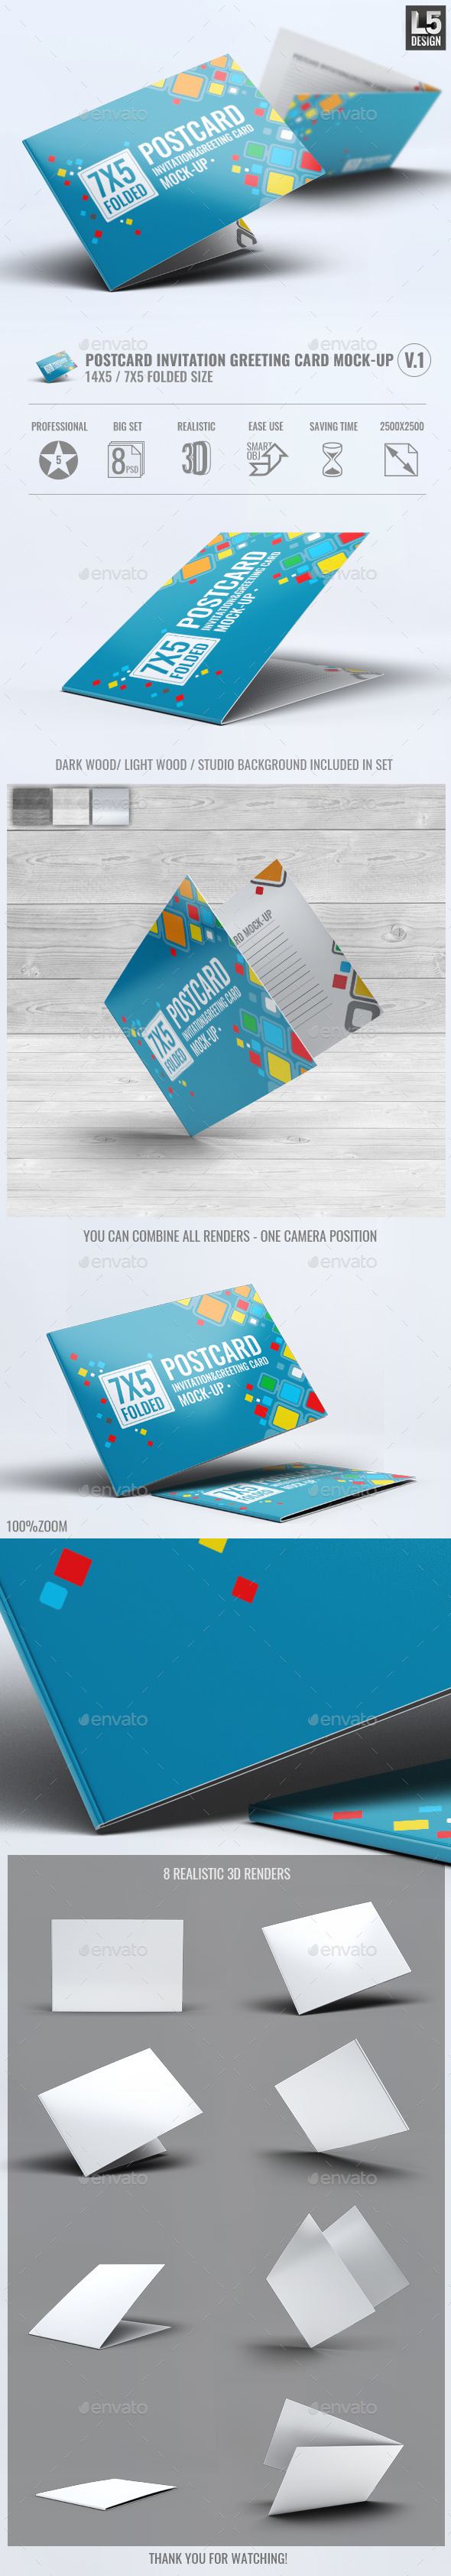 Postcard Invitation Greeting Card Mock-Up V.1 - Miscellaneous Print